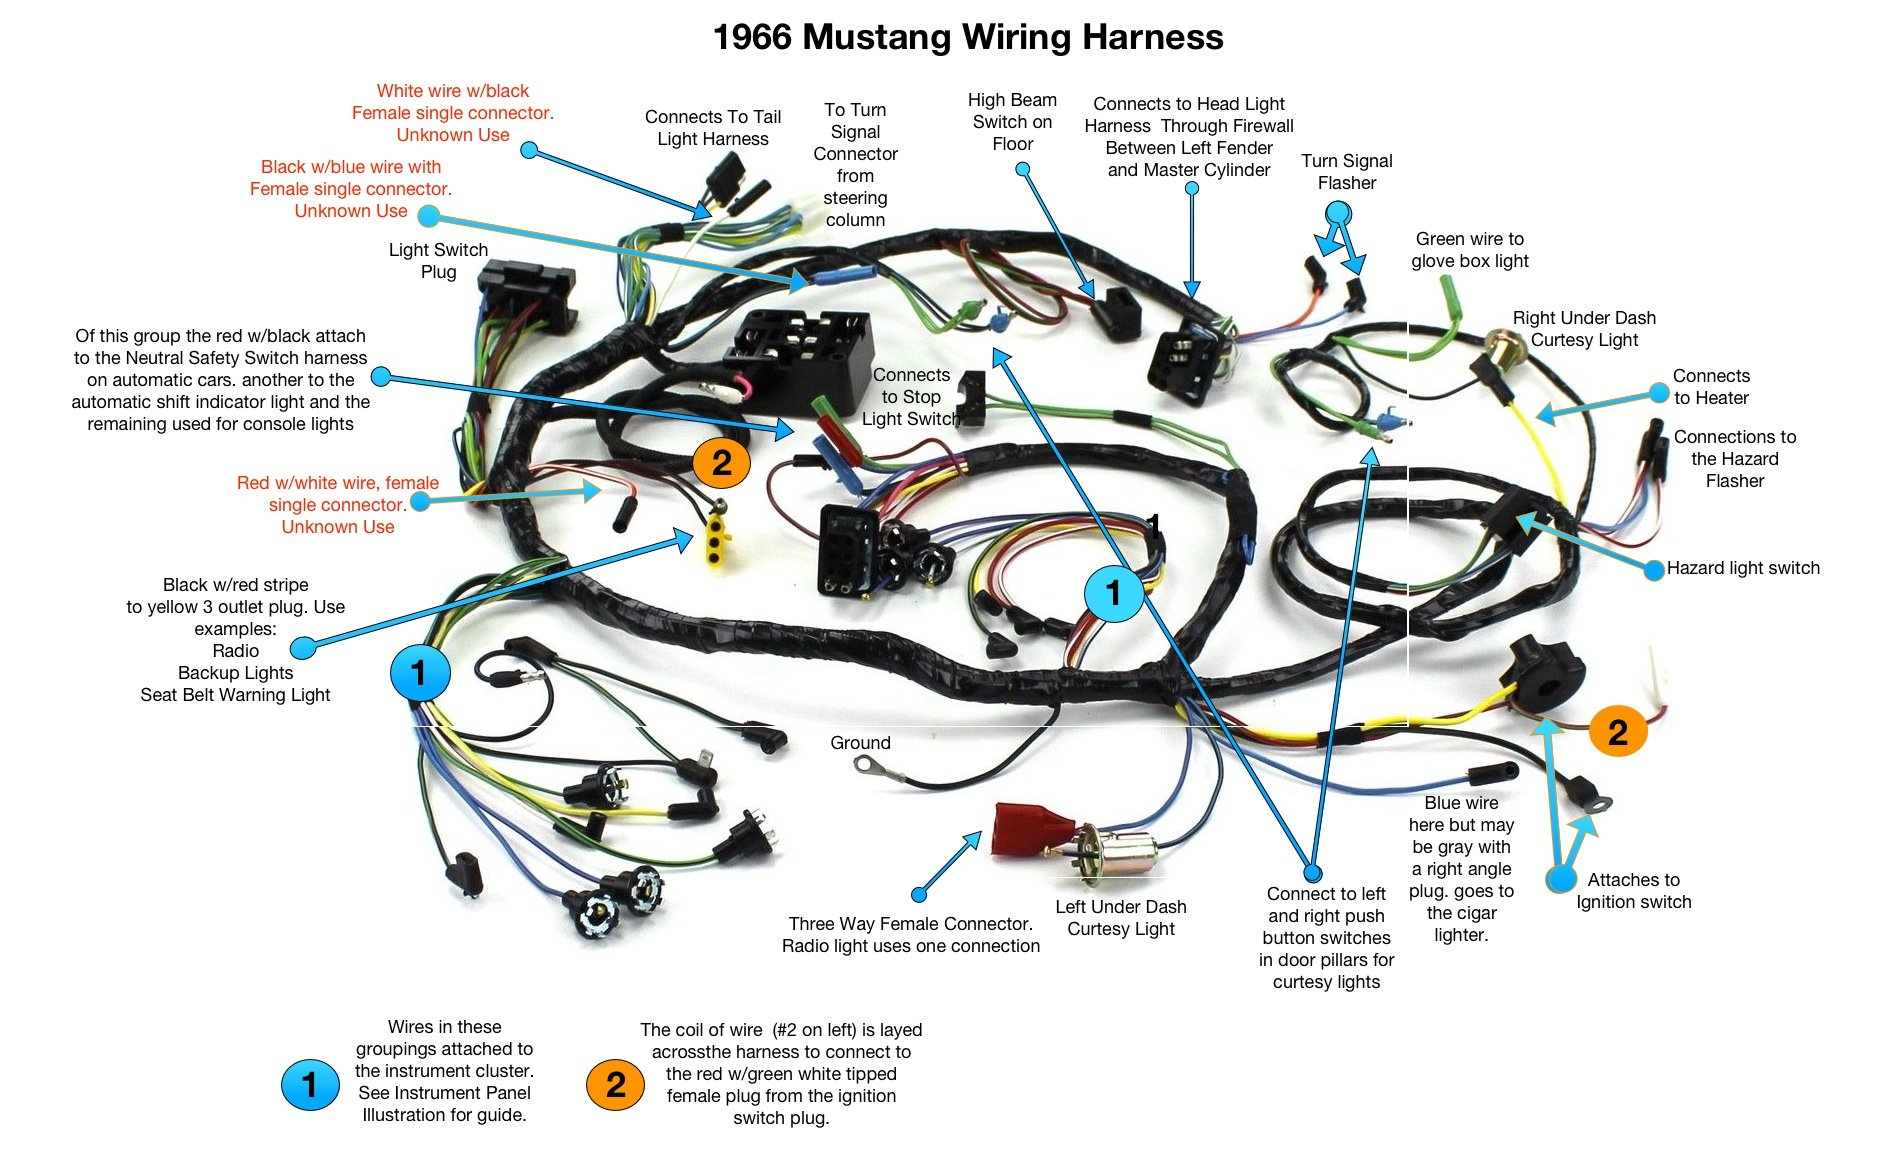 2003 Mustang Wiring Harness Diagram Schematics Wire Breaker Box Schemes Engine